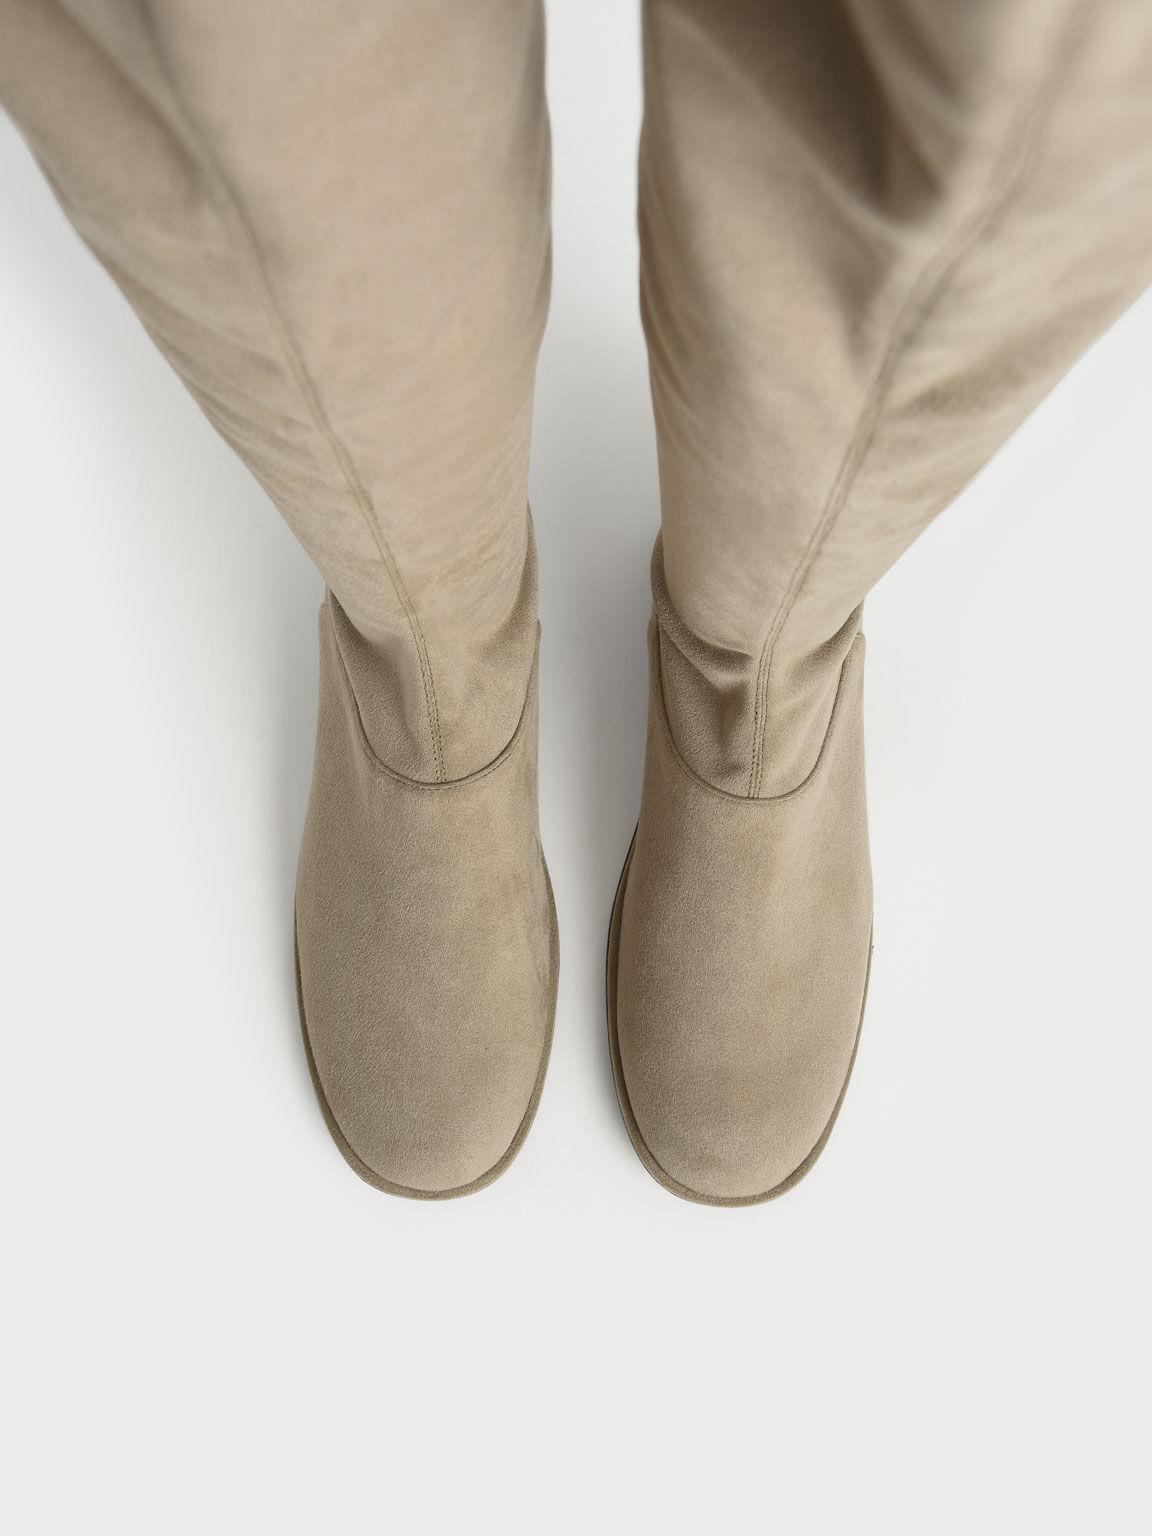 Textured Thigh-High Boots, Olive, hi-res